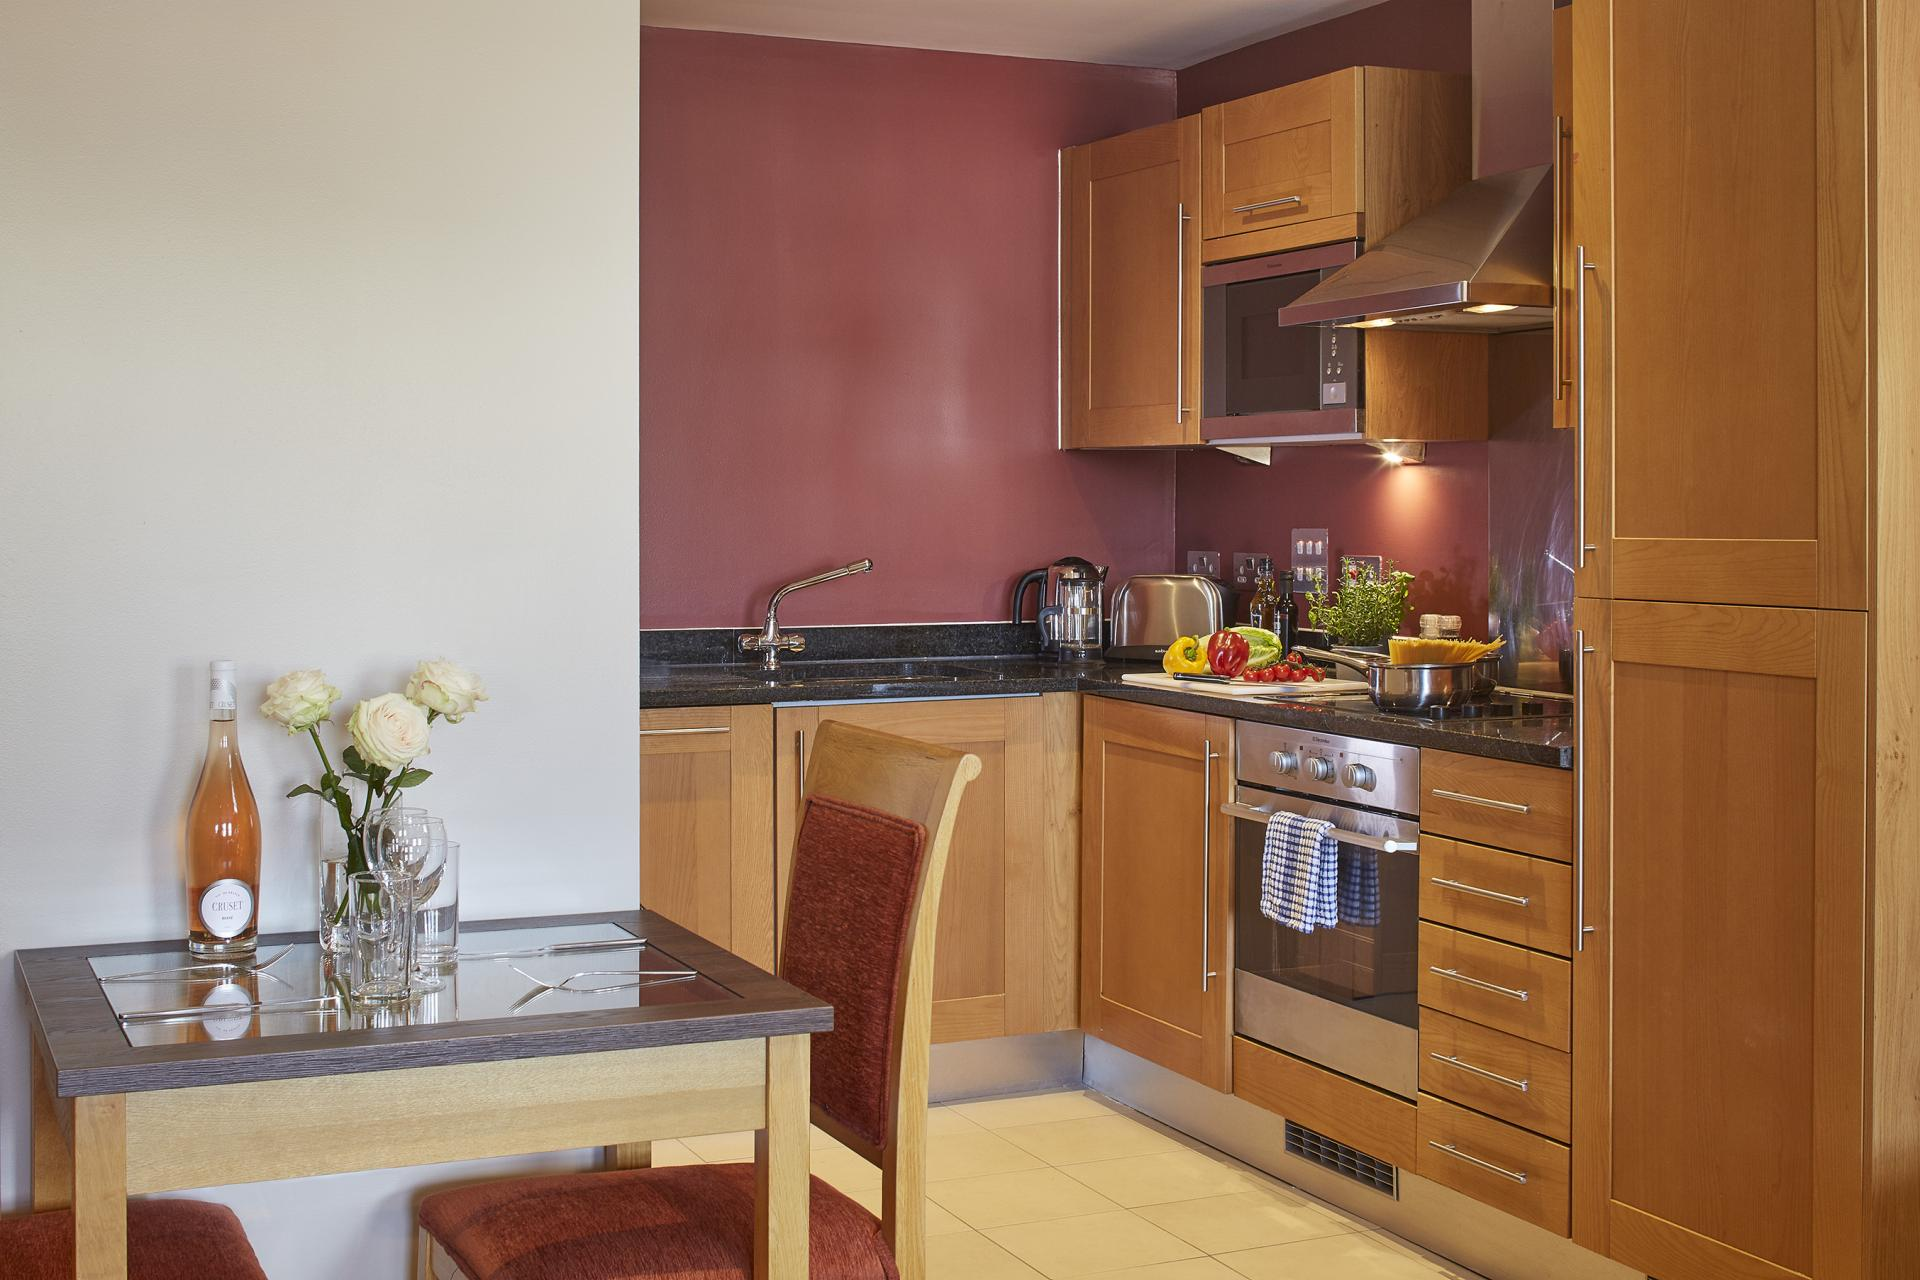 Kitchen at Limehouse Apartments, Limehouse, London - Citybase Apartments